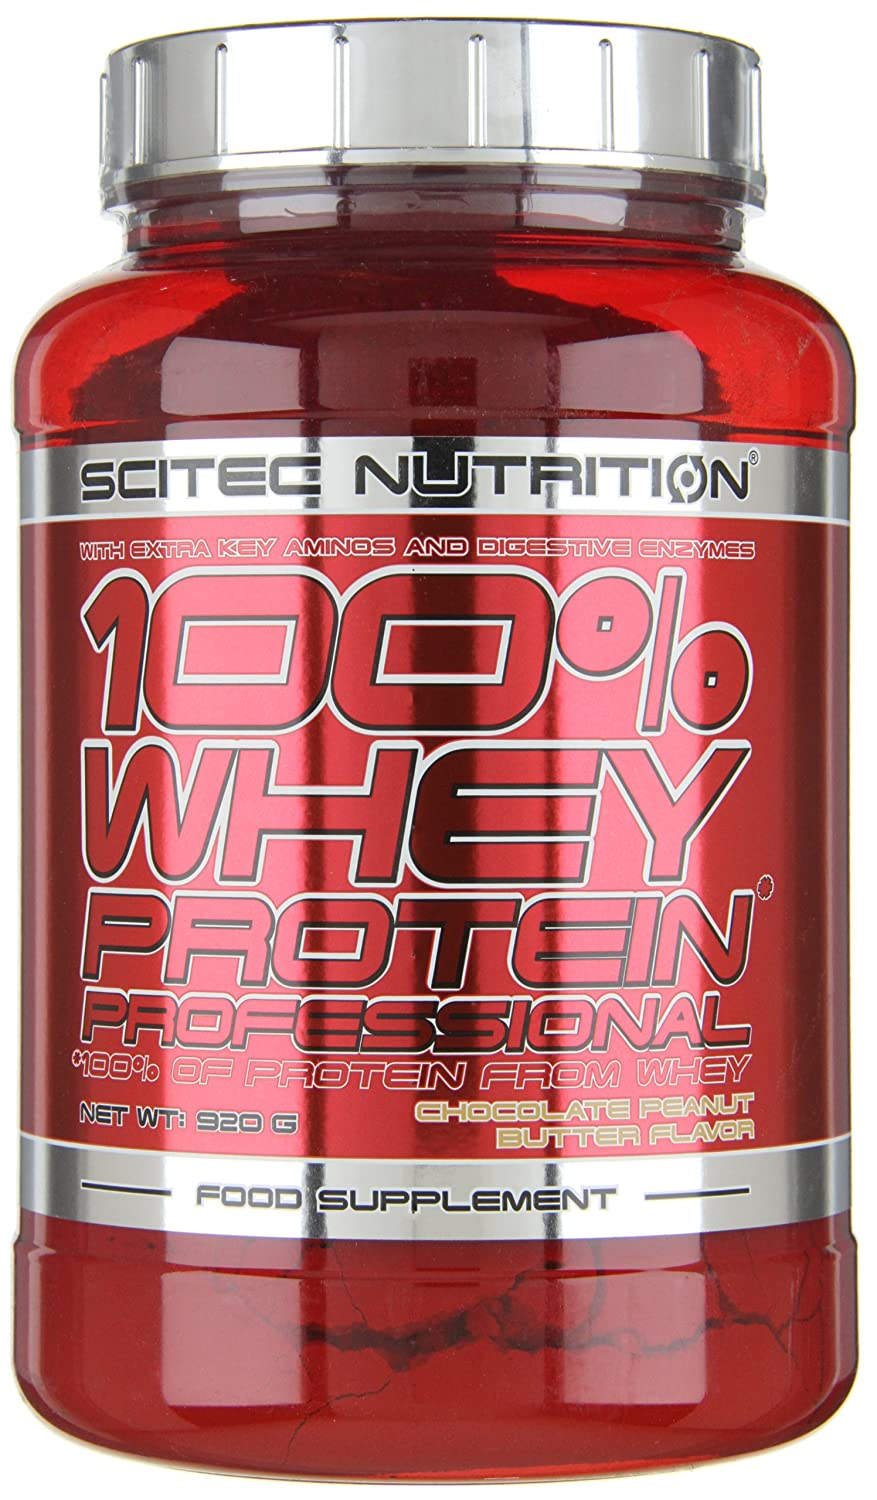 Scitec Nutrition Whey Protein Professional Proteína Chocolate, Cacahuete - 920 g